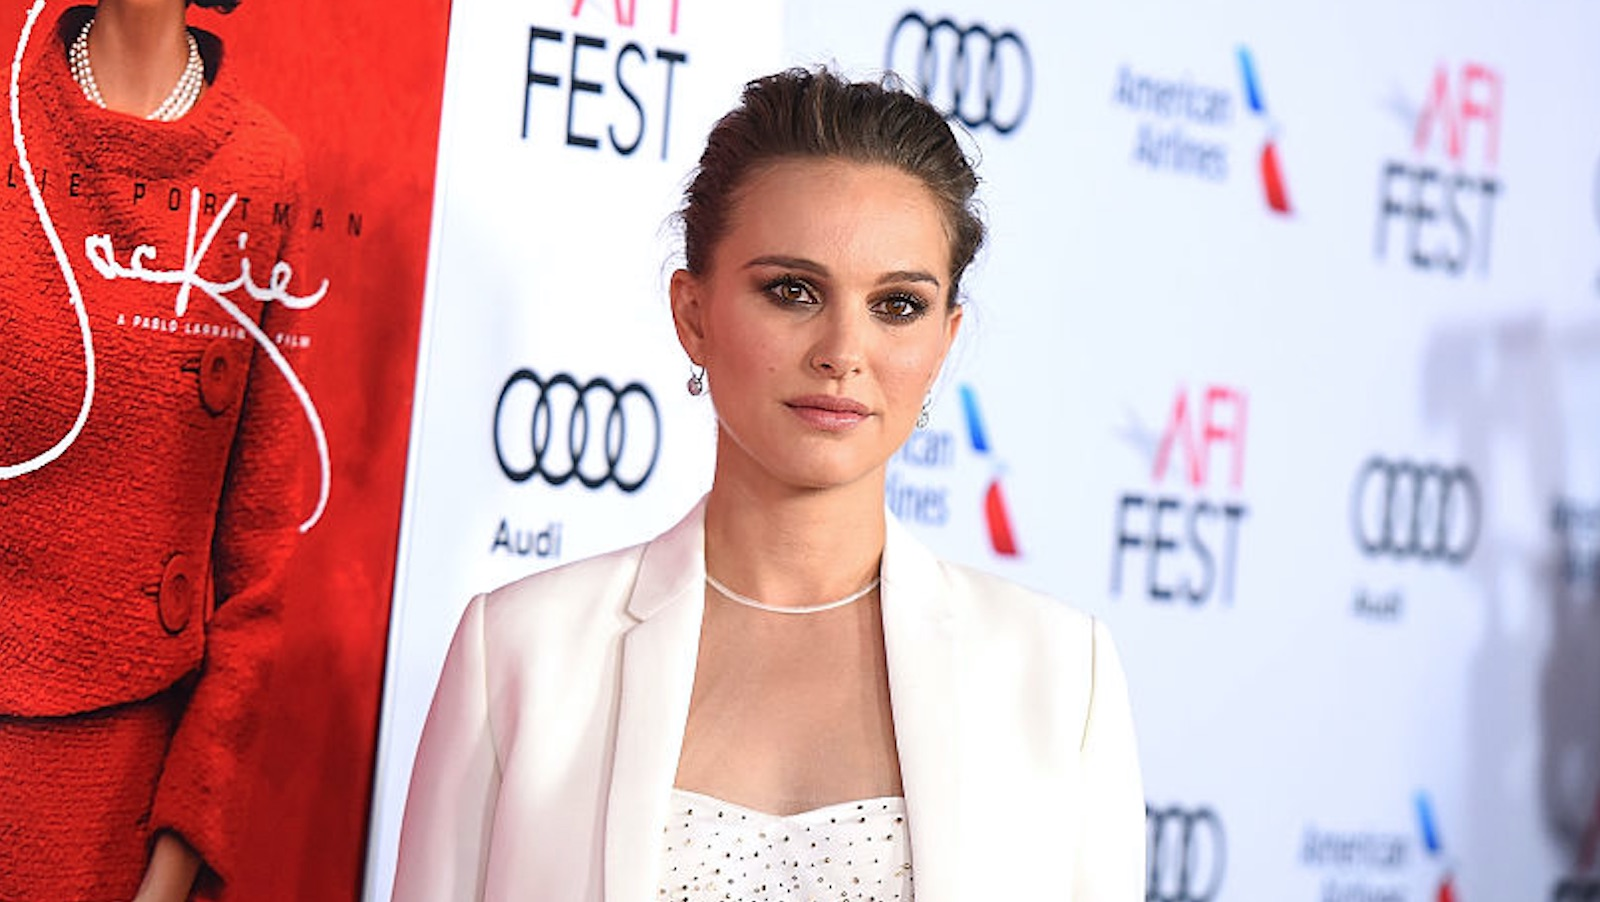 Natalie Portman wore an elegant Dior dress with a face on it and we are in love